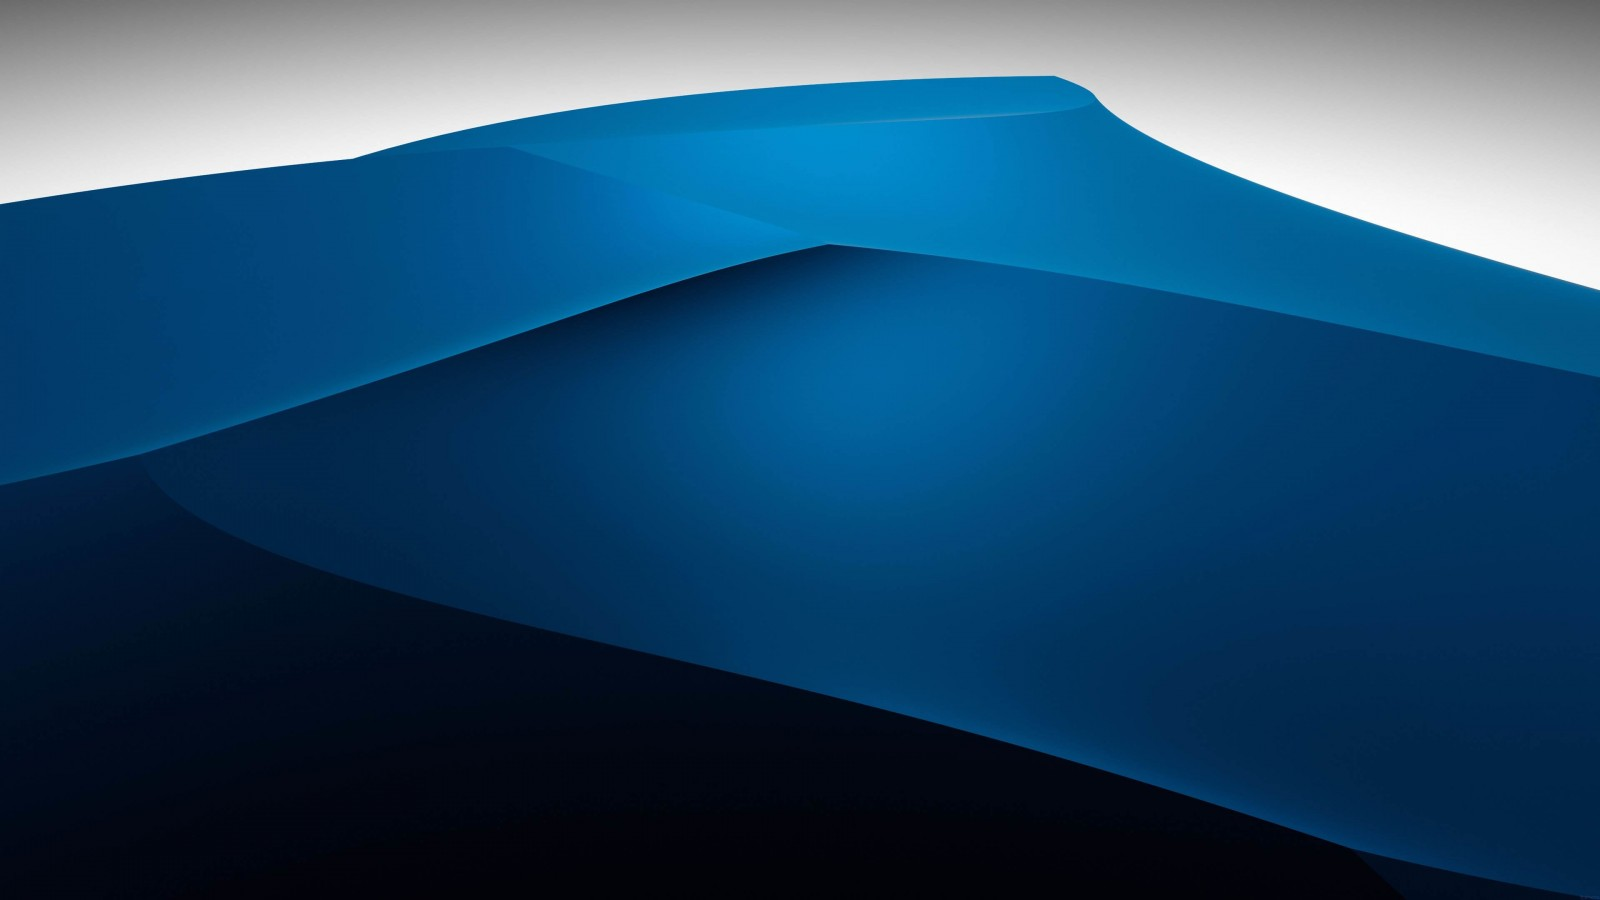 3D Blue Dunes HD wallpaper for 1600x900 screens - HDwallpapers.net Wallpaper